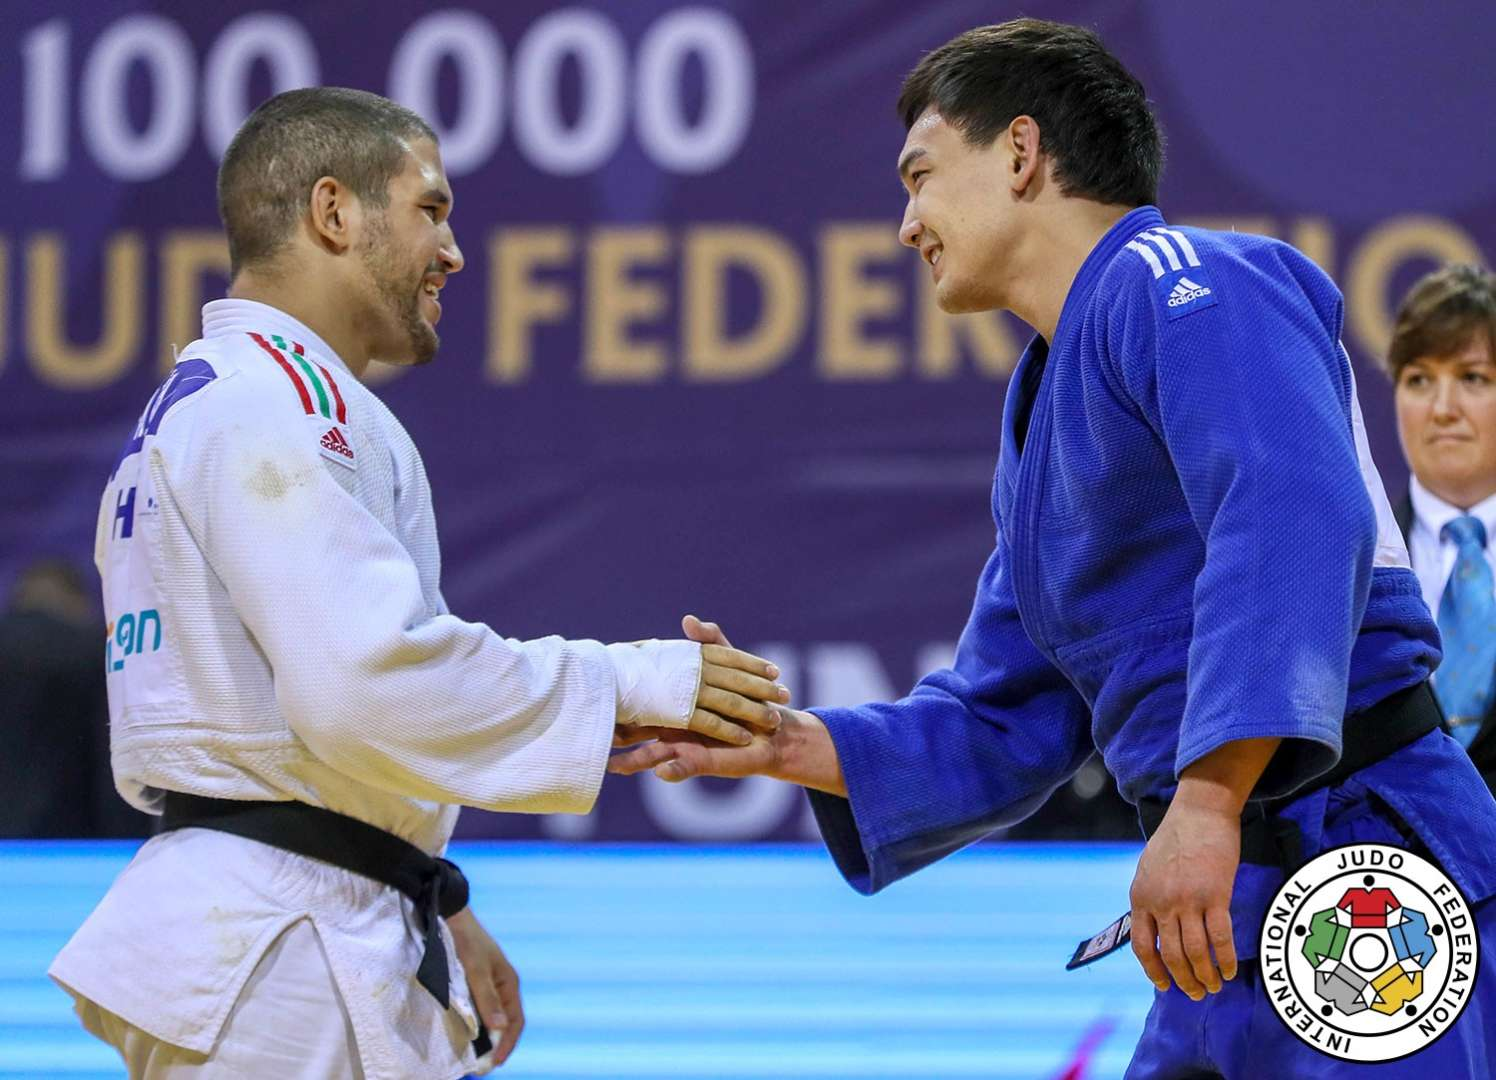 Judo Is All About Respect Fight Sports